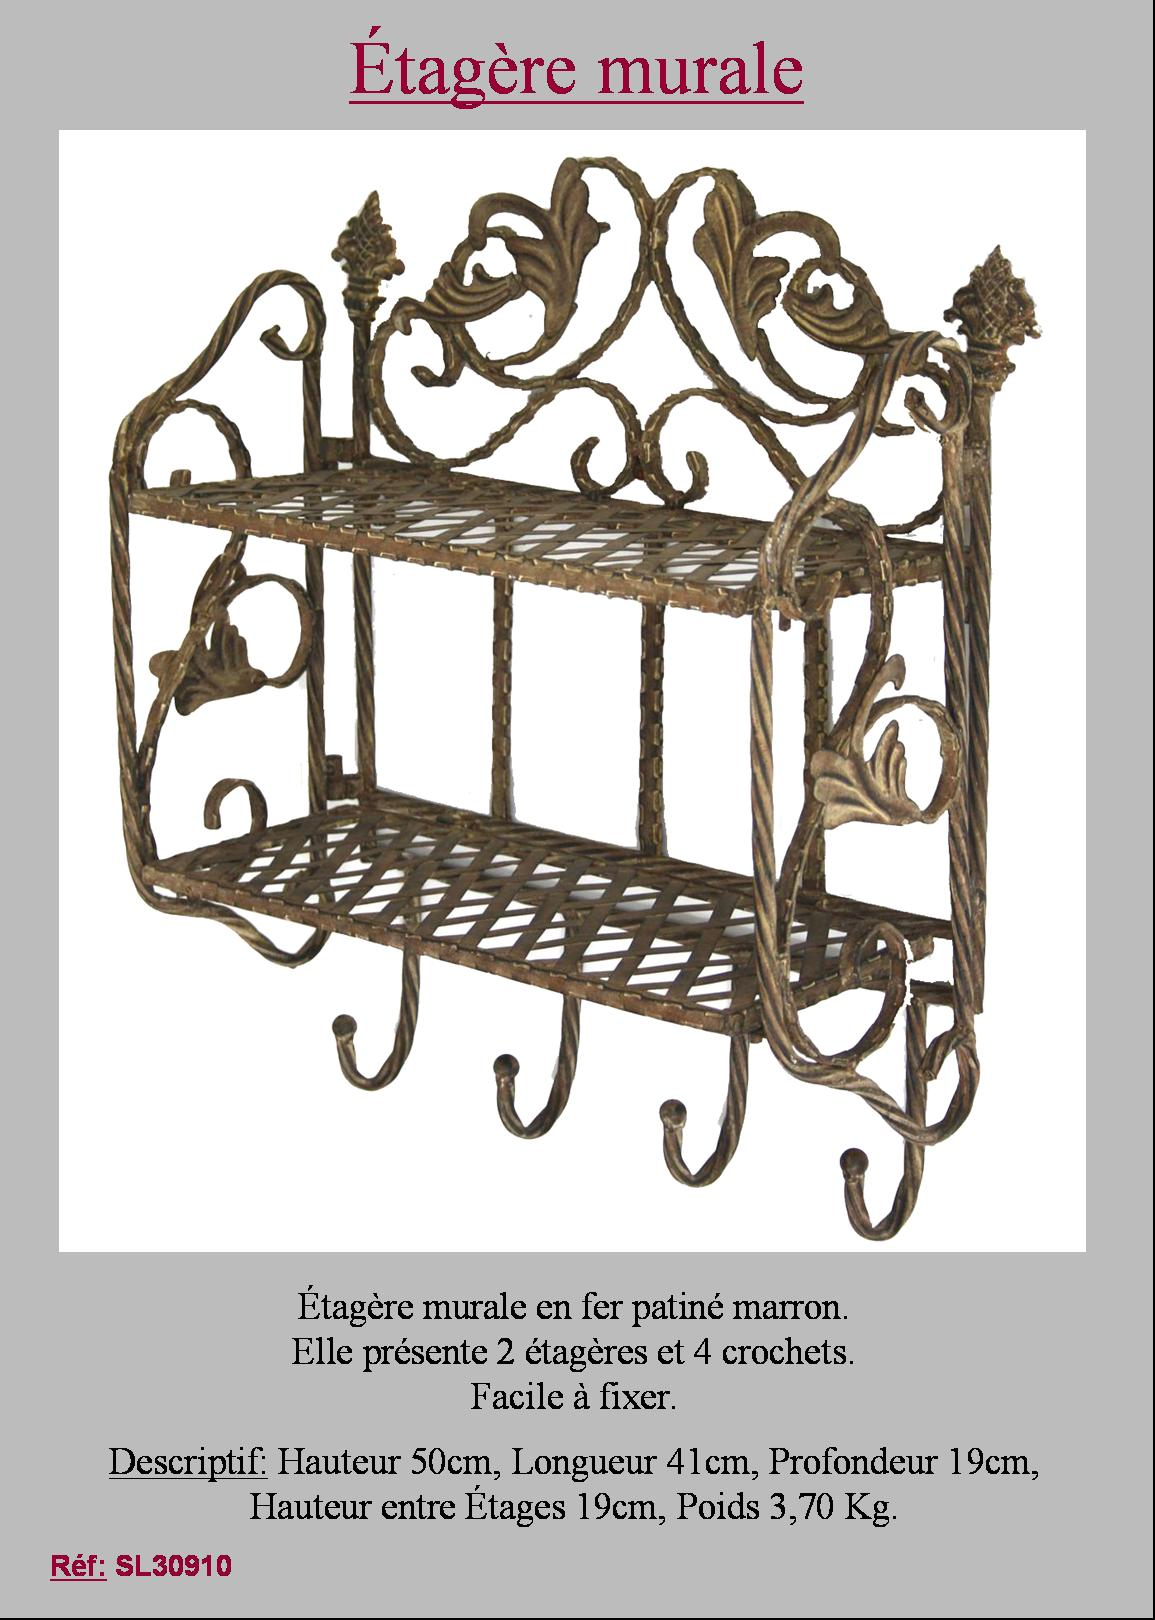 etagere boulangere console meuble de cuisine fer forge. Black Bedroom Furniture Sets. Home Design Ideas